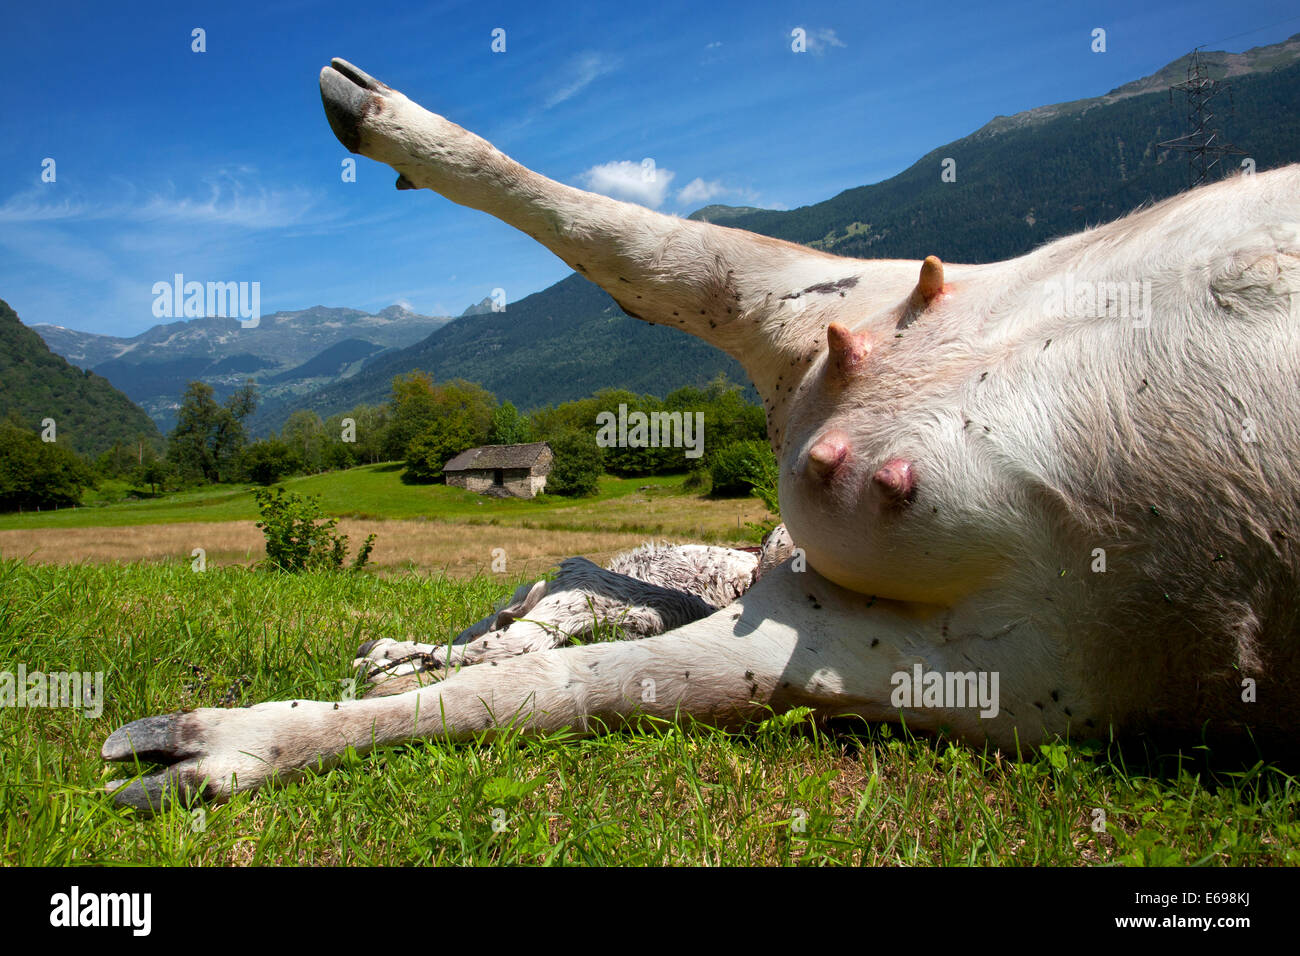 Dead cow with rigor mortis, Grumo, Switzerland Stock Photo